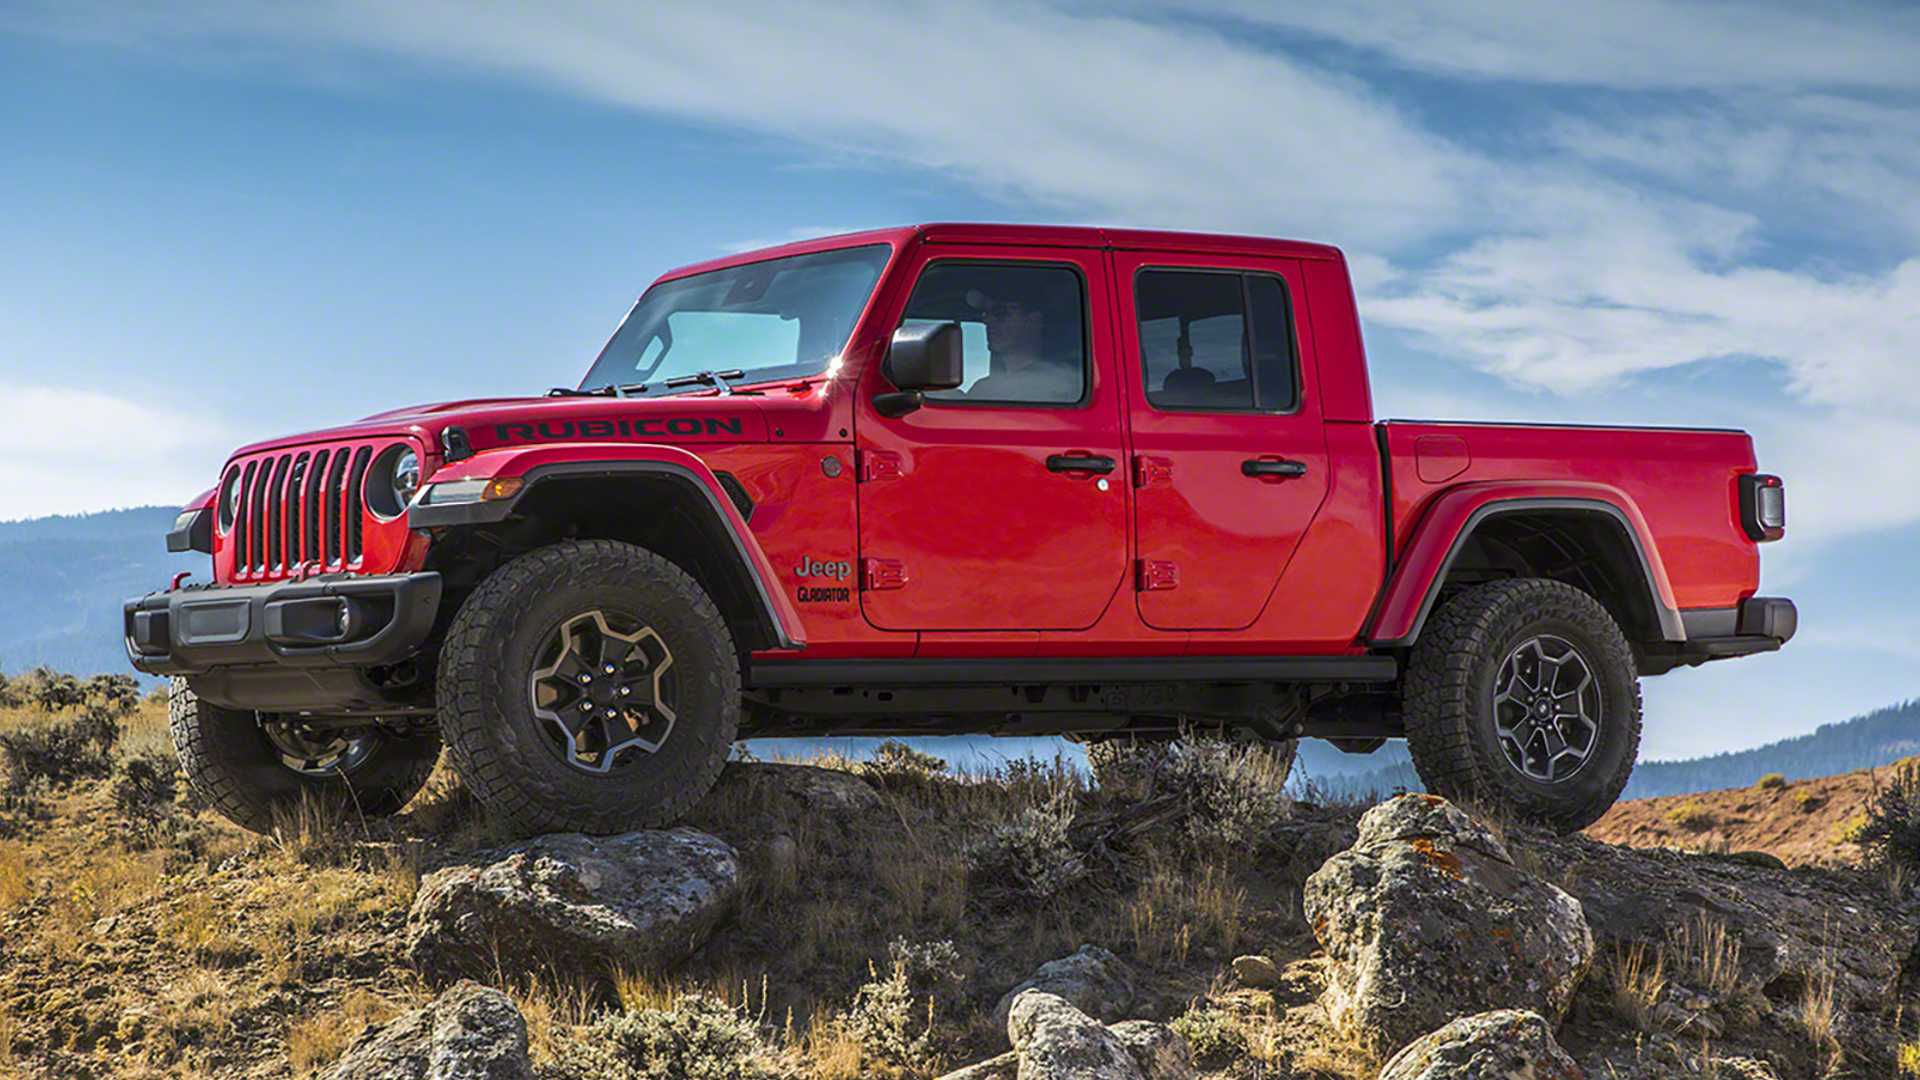 64 Best 2020 Jeep Gladiator 2 Door Specs